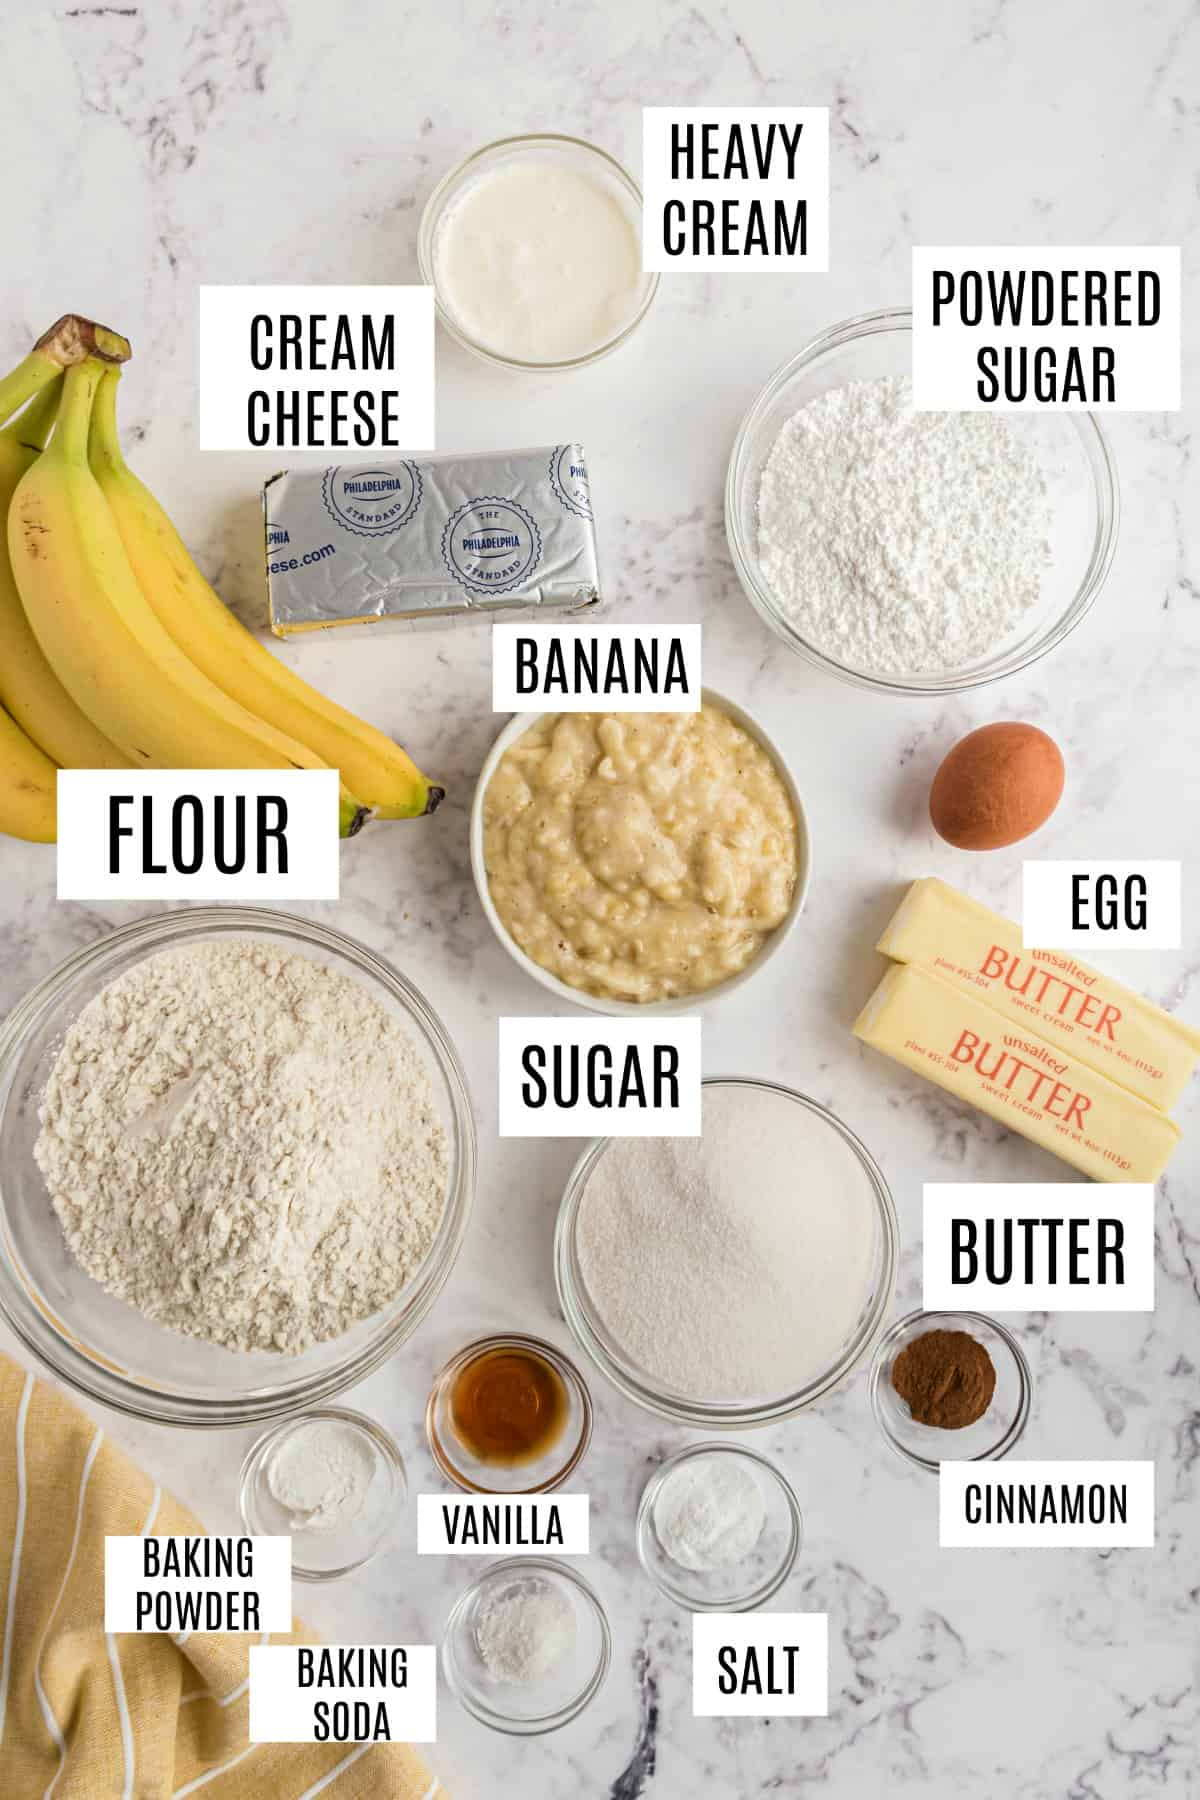 Ingredients needed for homemade banana cake with cream cheese frosting.